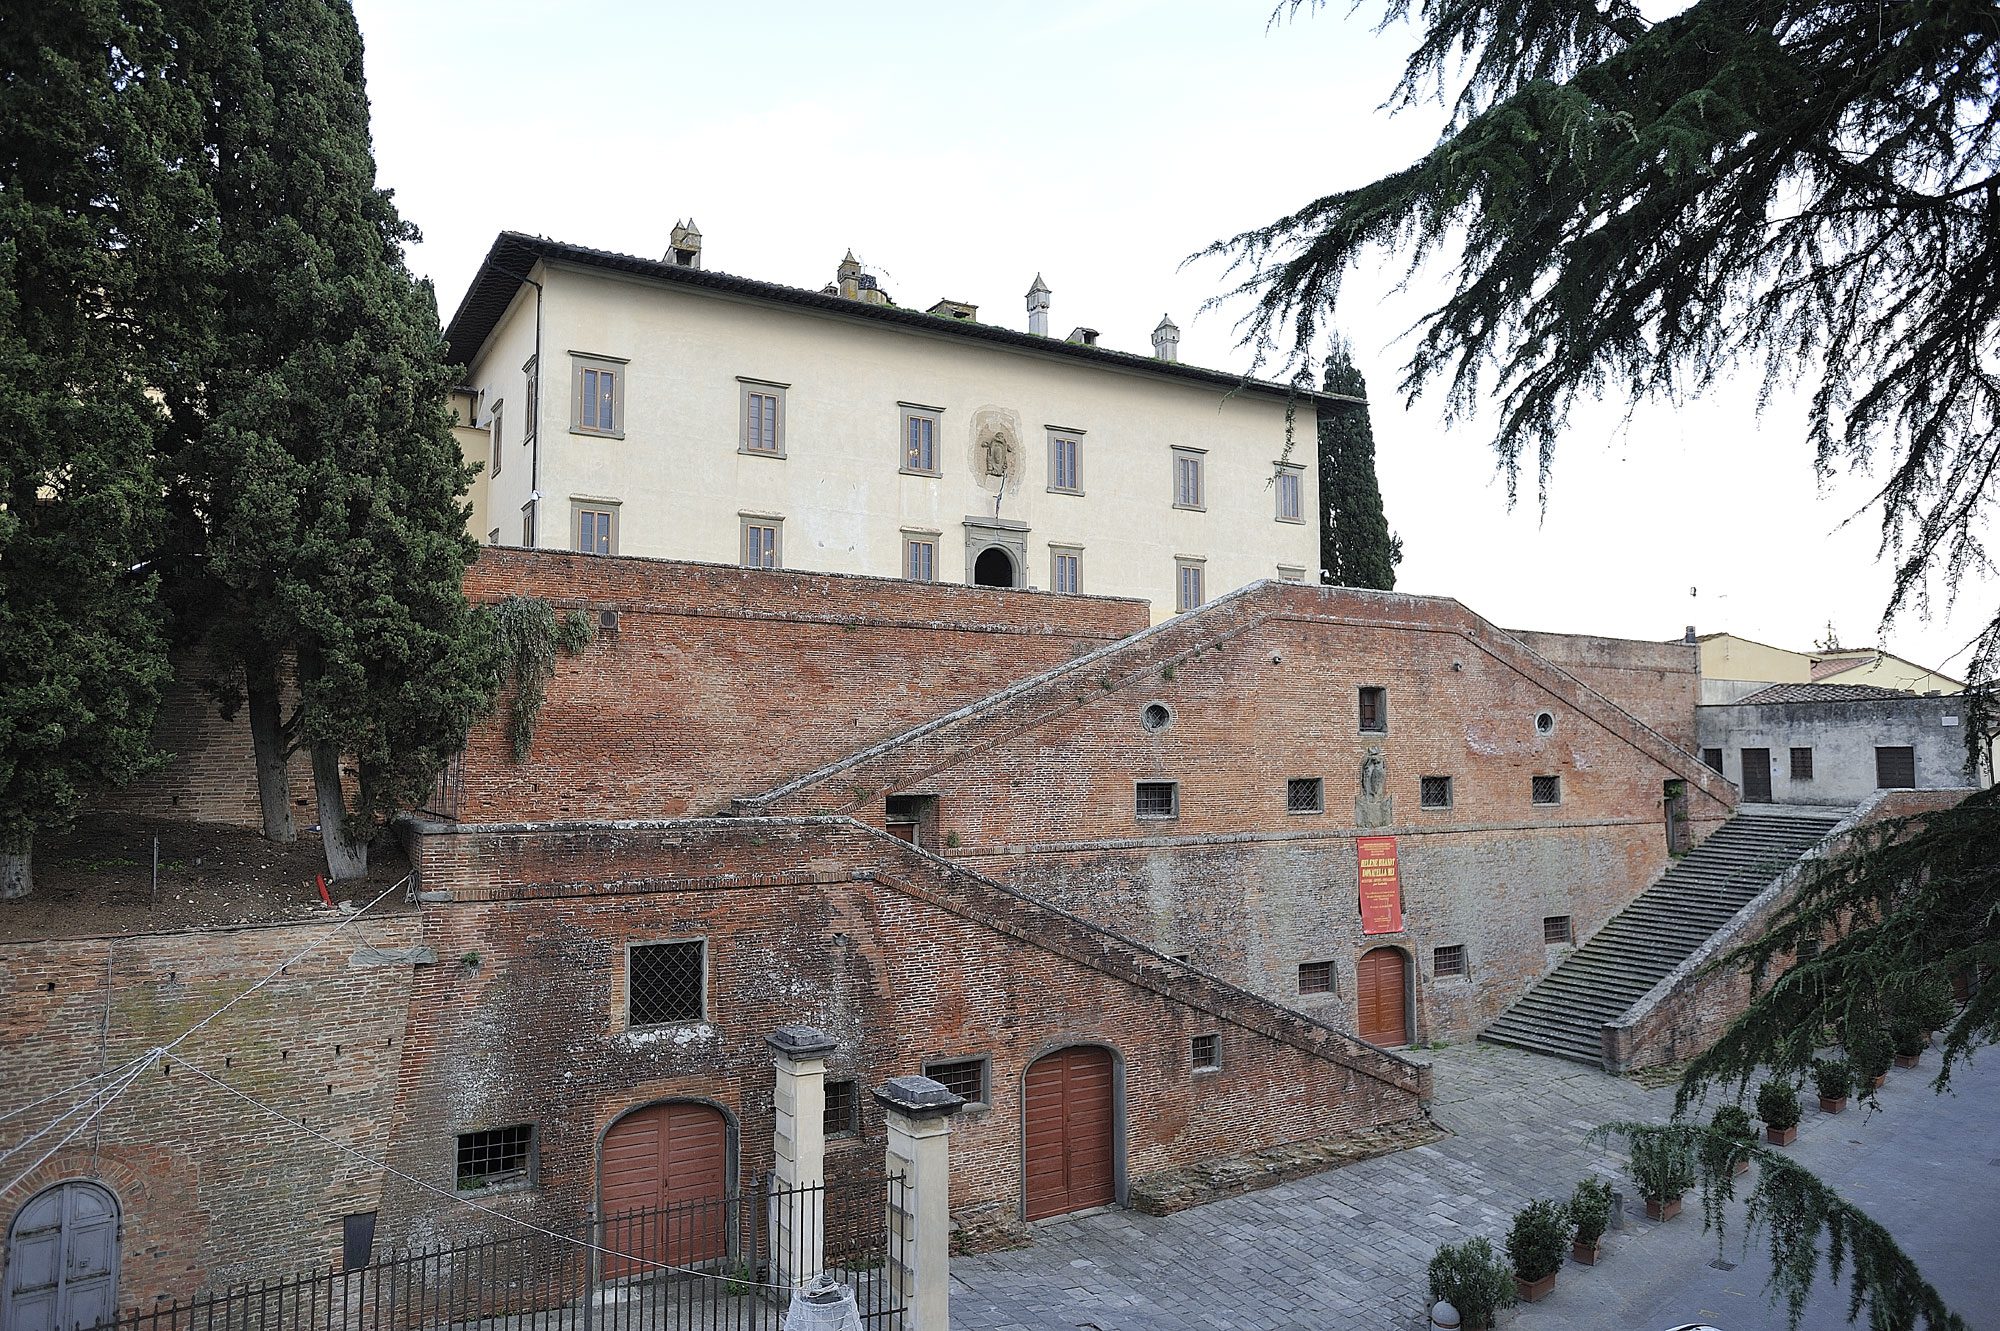 Villa Cerreto Guidi close to Florence